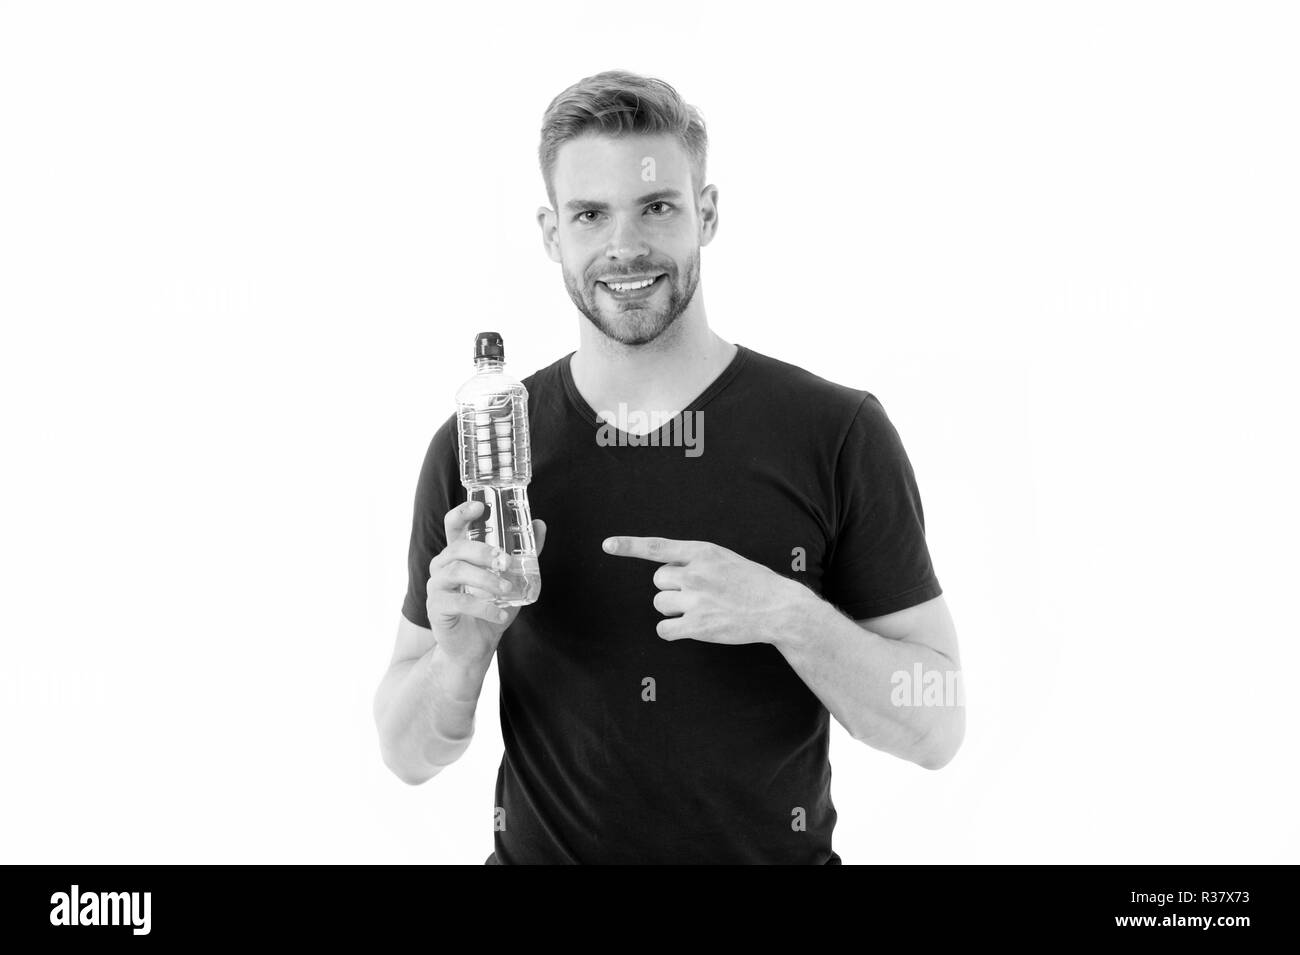 Macho point finger at water bottle isolated on white. Happy man smile with plastic bottle. Thirst and health. Stay hydrated and healthy. Drinking water for health. Presenting product. - Stock Image